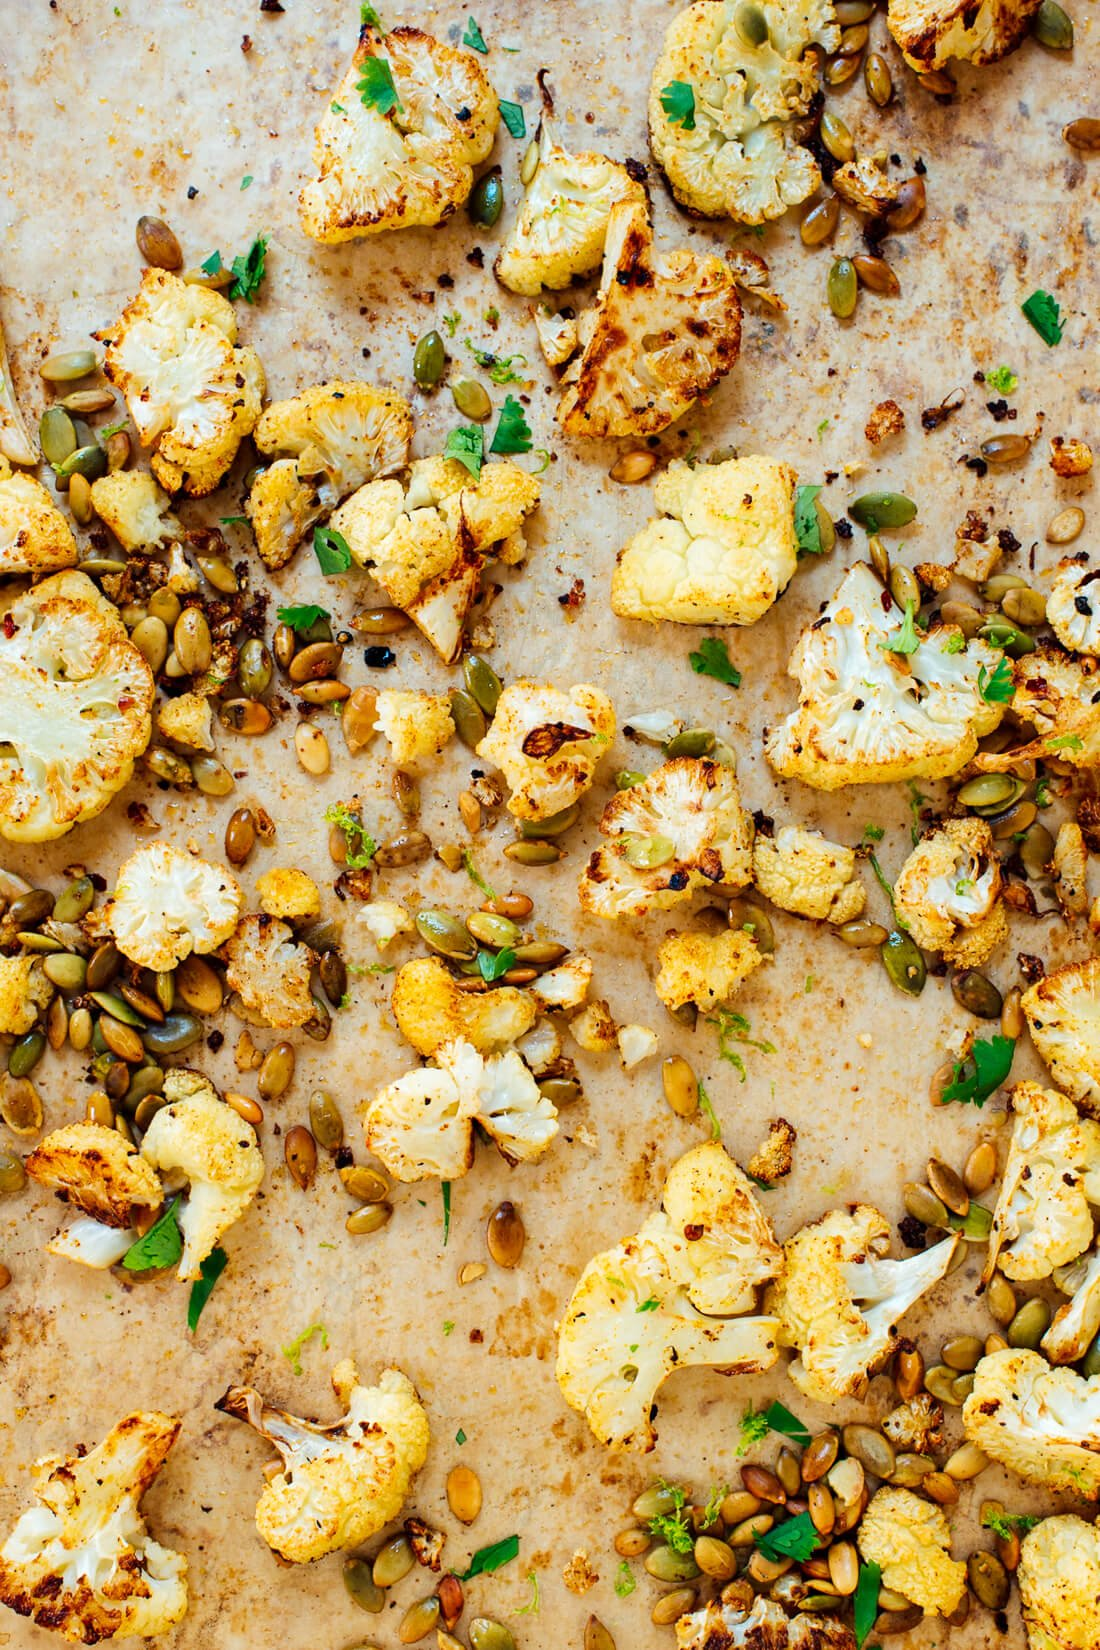 Roasted cauliflower with Mexican flavors (cumin, chili powder, pepitas and lime!). It's the perfect healthy side dish for your favorite Mexican recipes!